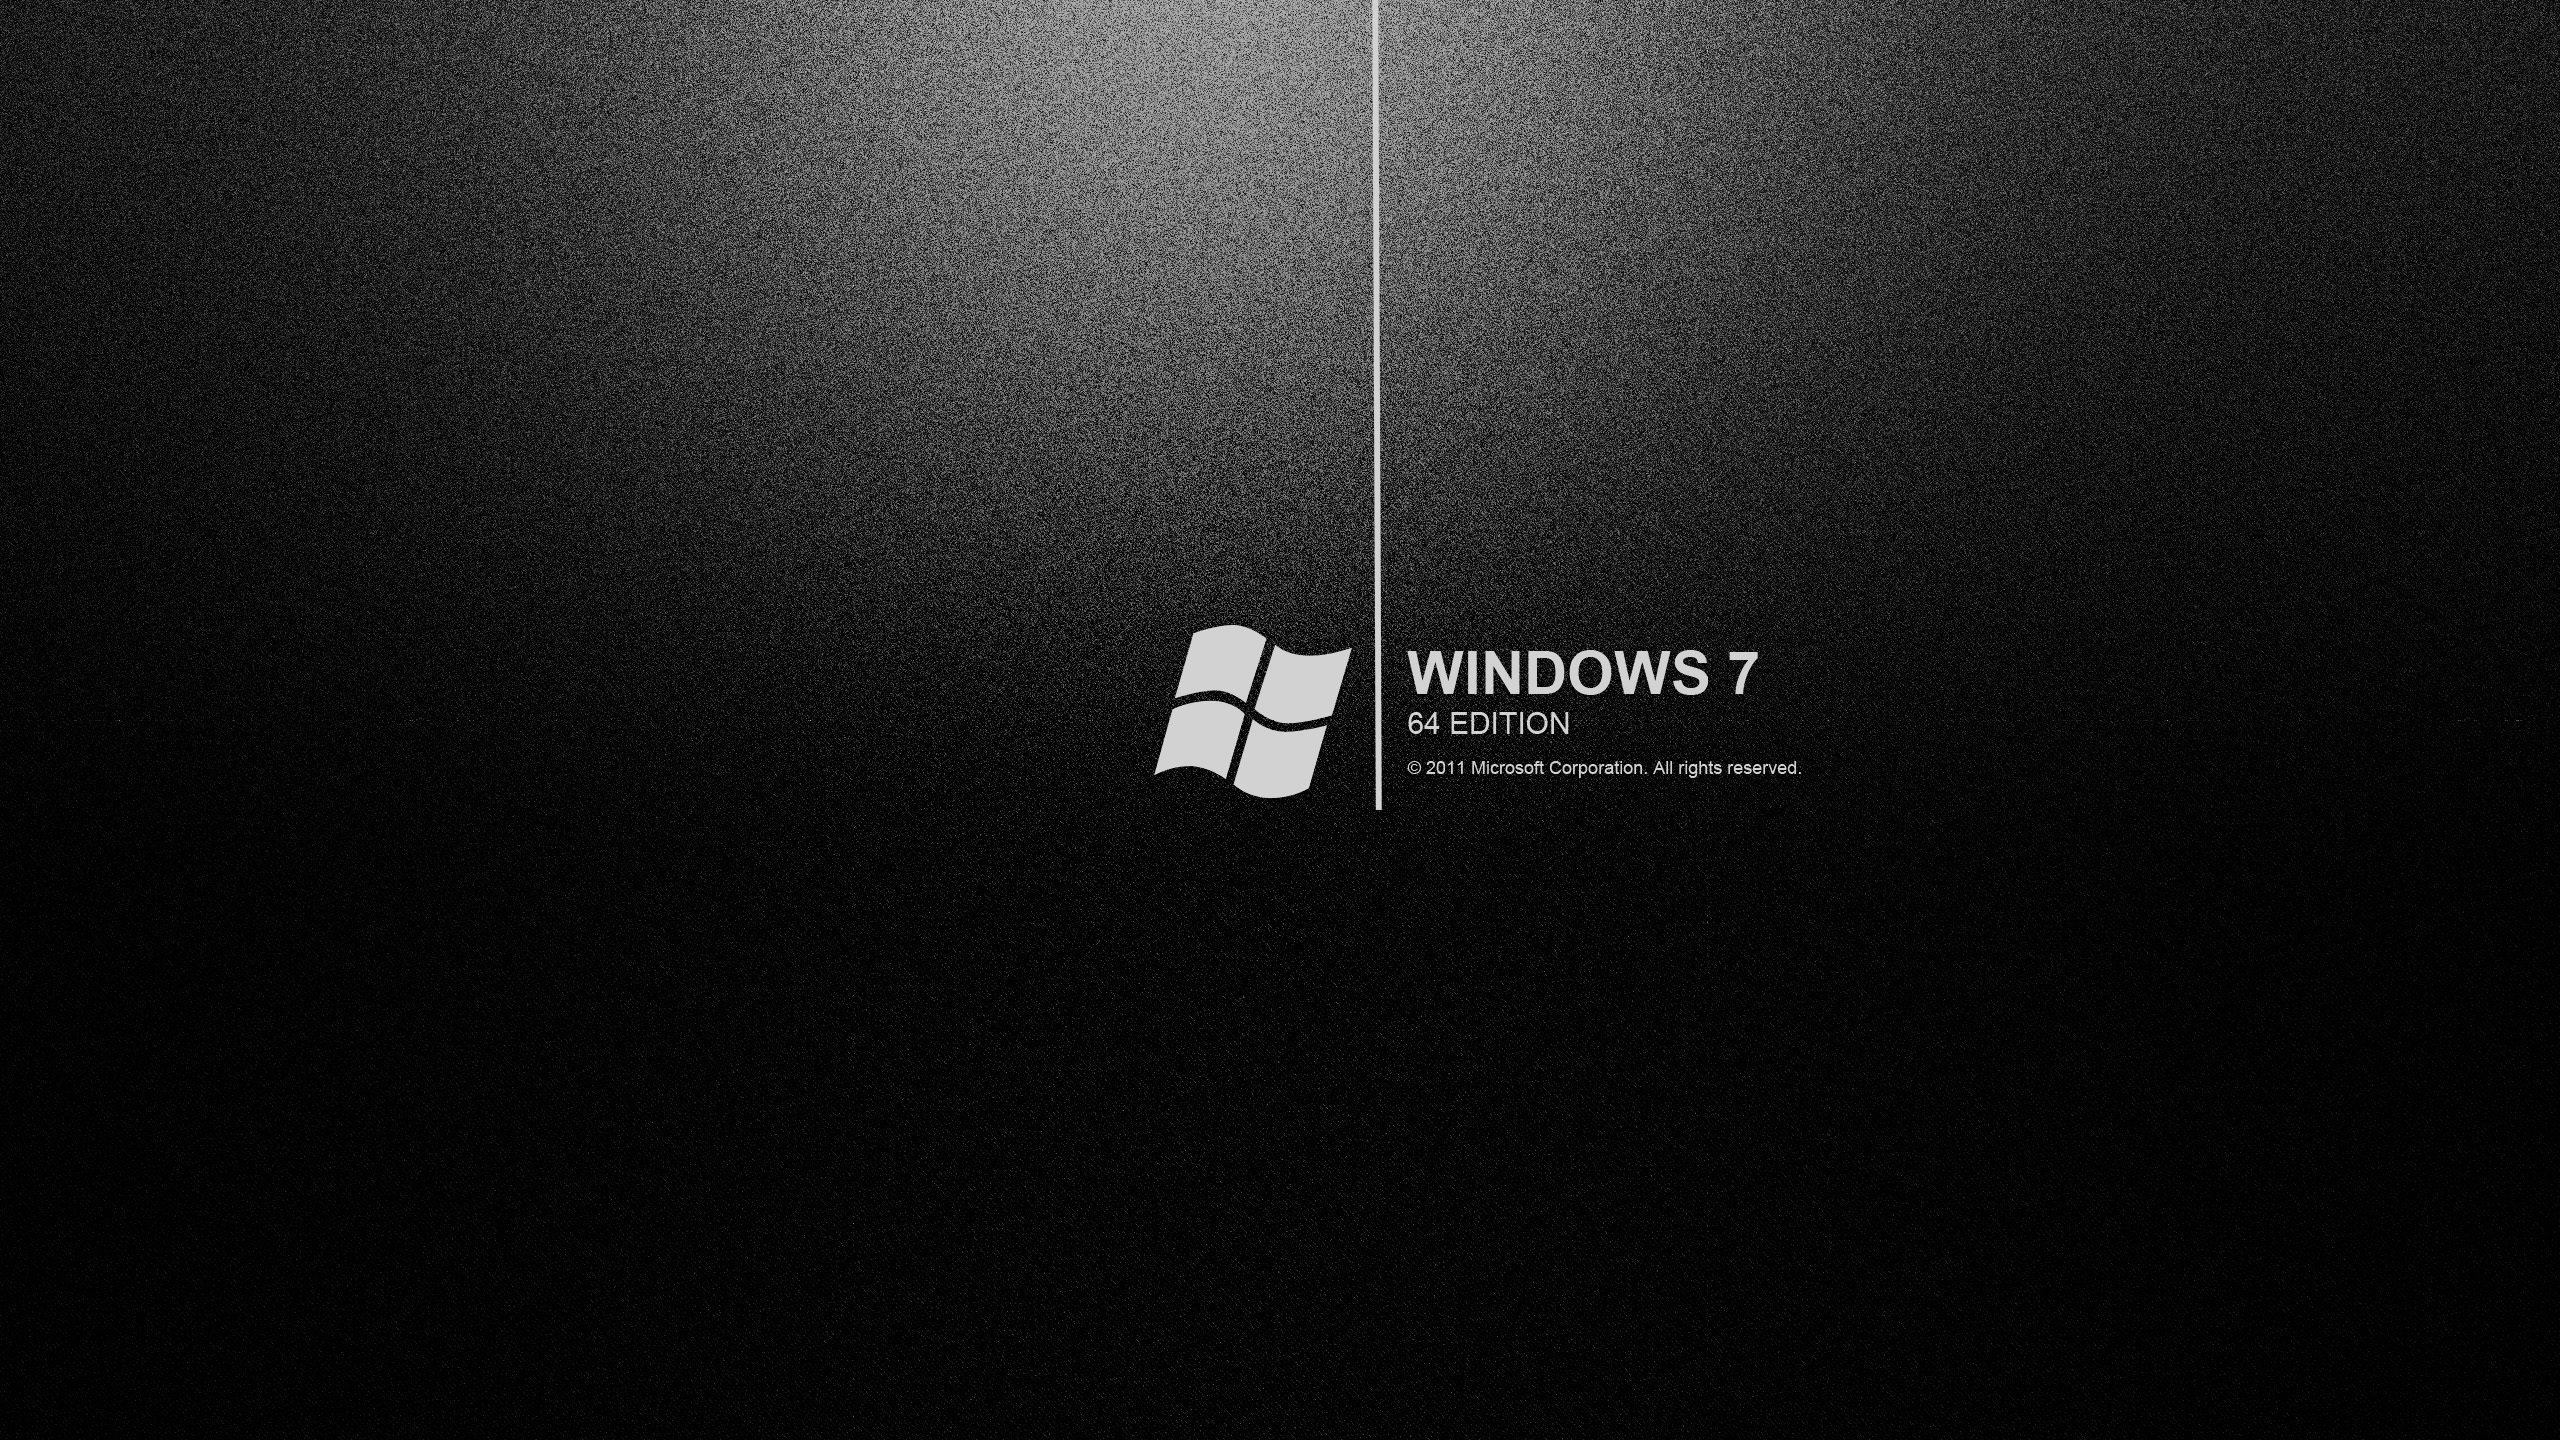 Windows 7 black wallpapers backgrounds dark hd desktop wallpapersjpg 2560x1440